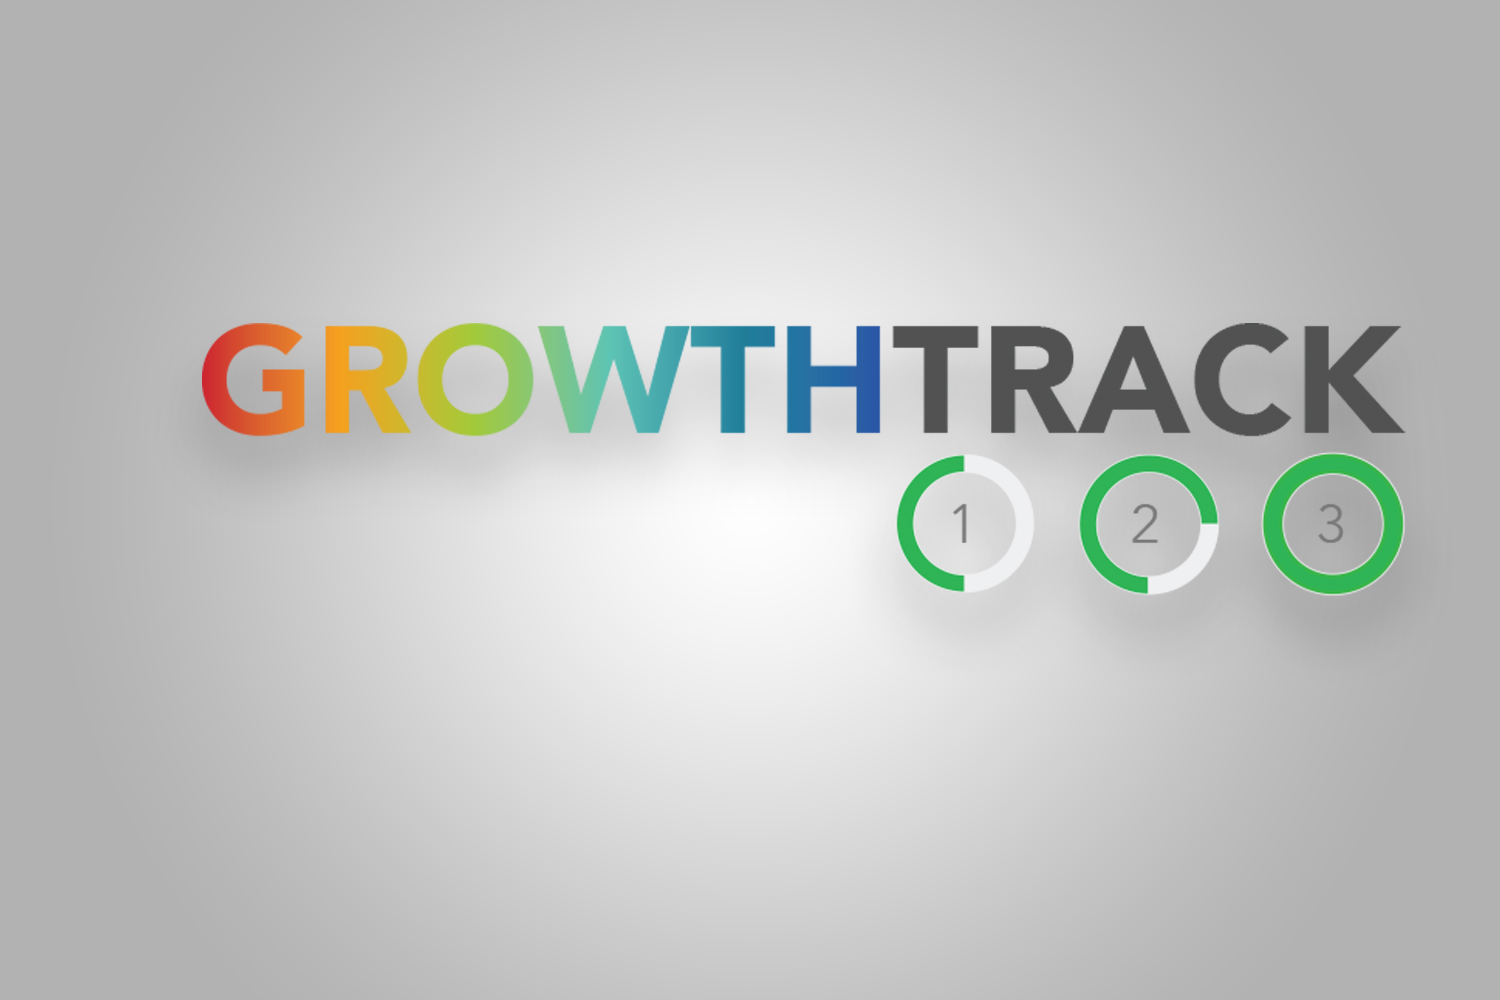 Graphic Growth Track image